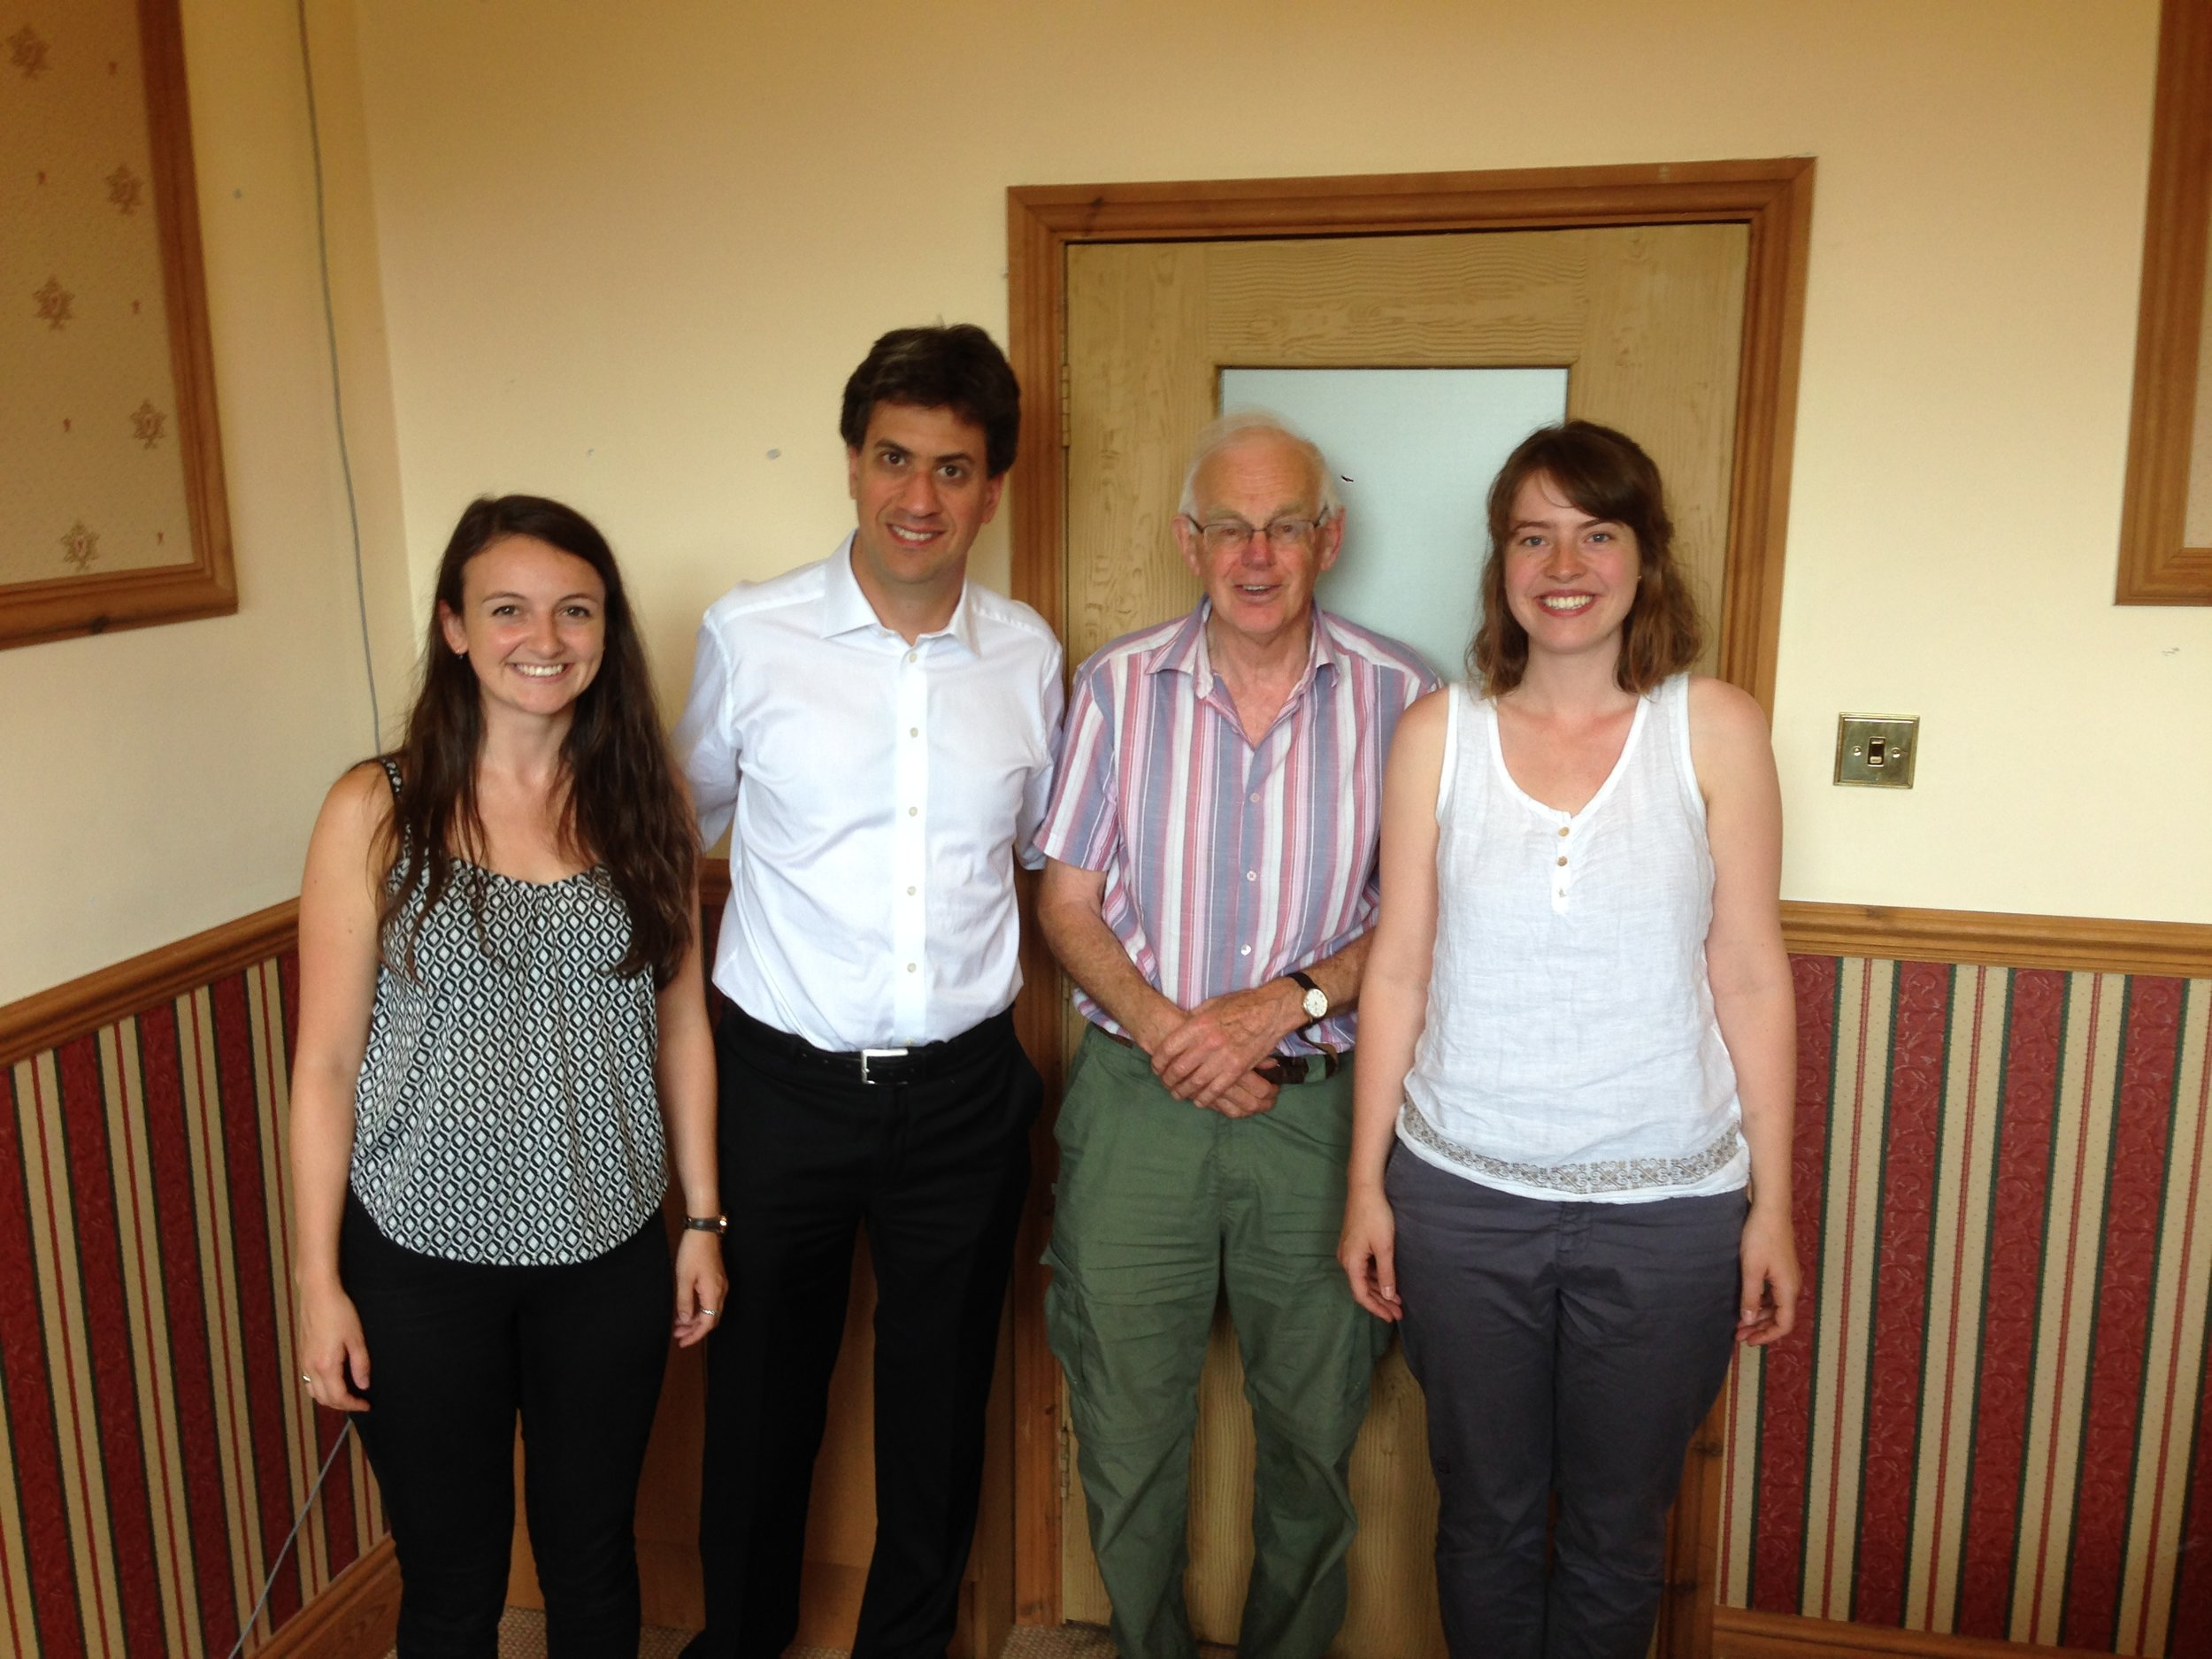 Some of the HFTF team meeting with Ed Miliband MP